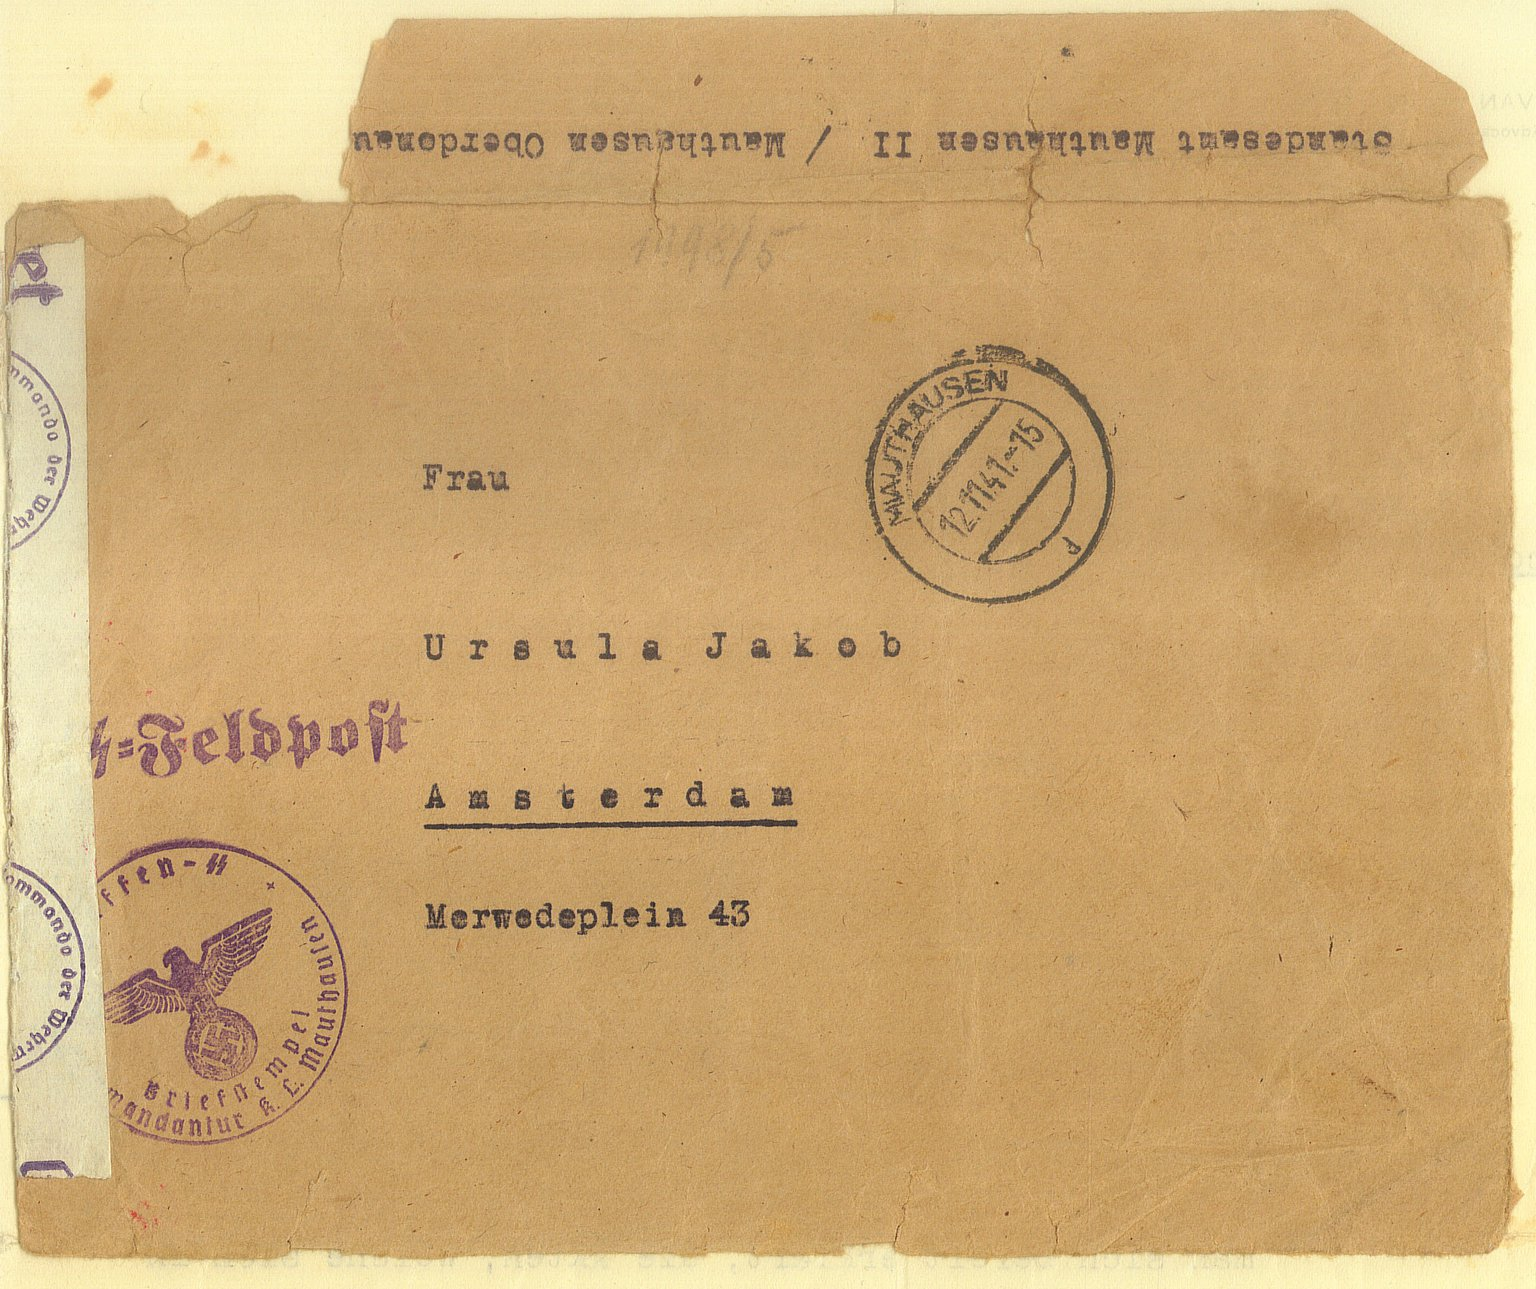 The envelope with the notice of the death of Rudolf Jacob